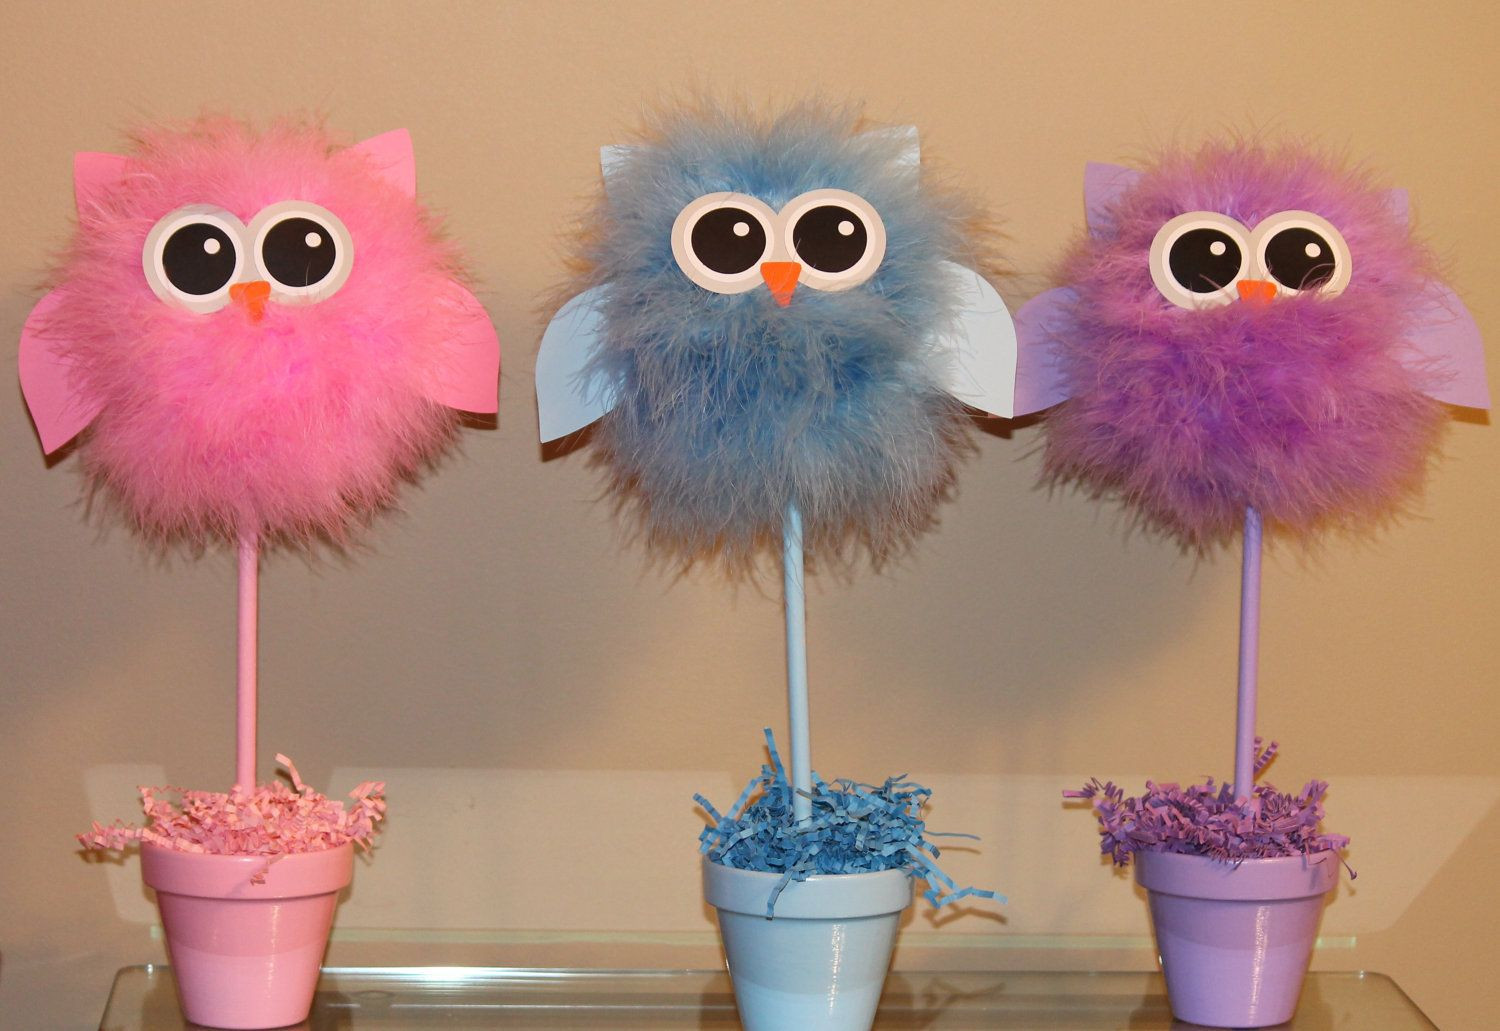 DIY Owl Baby Shower Decorations  Owl centerpiece and party decoration choice of one